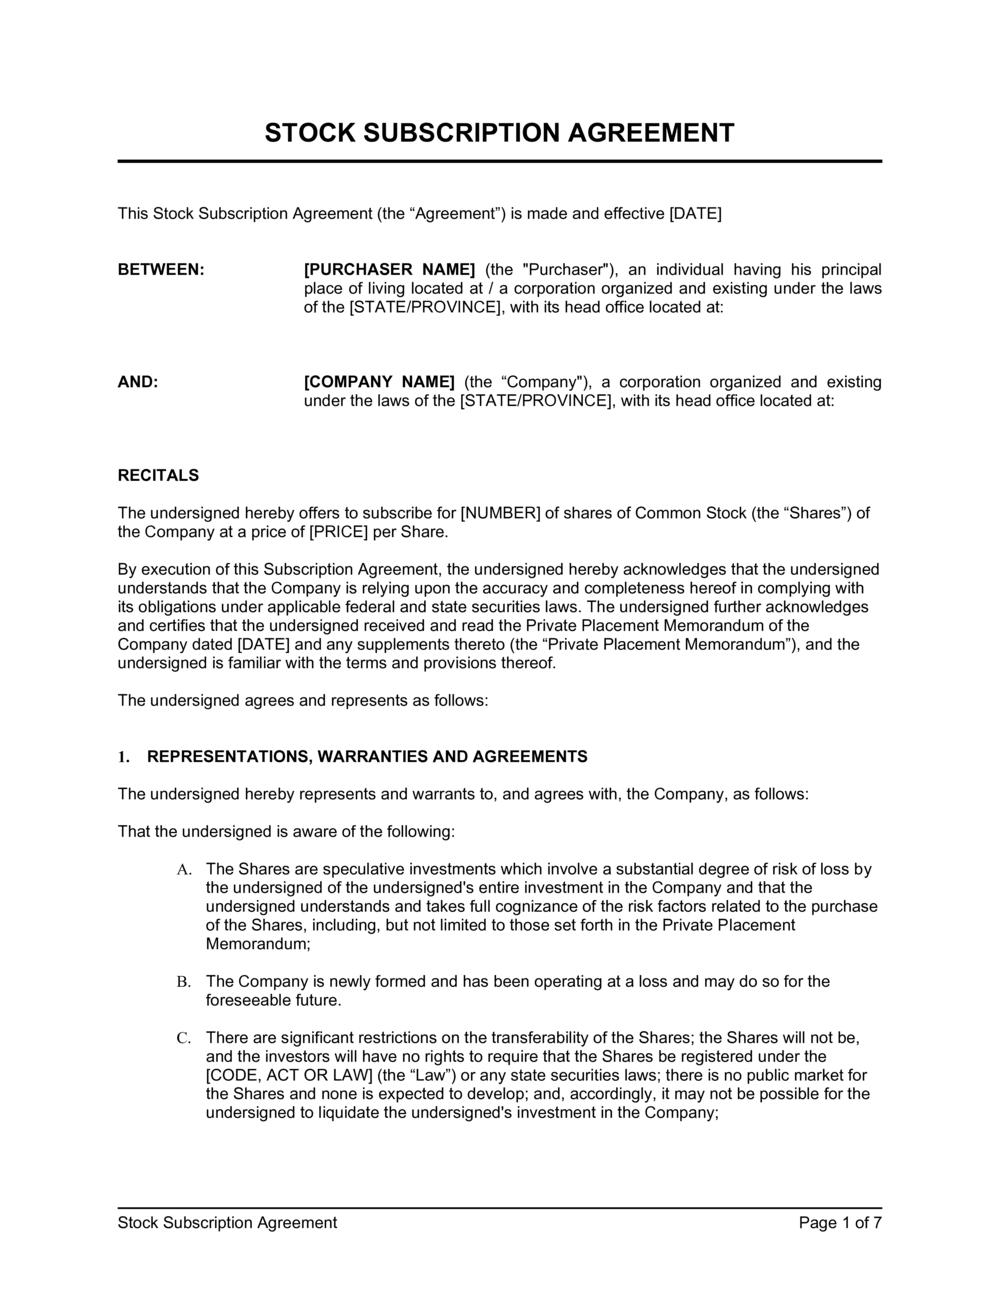 Business-in-a-Box's Stock Subscription Agreement Template